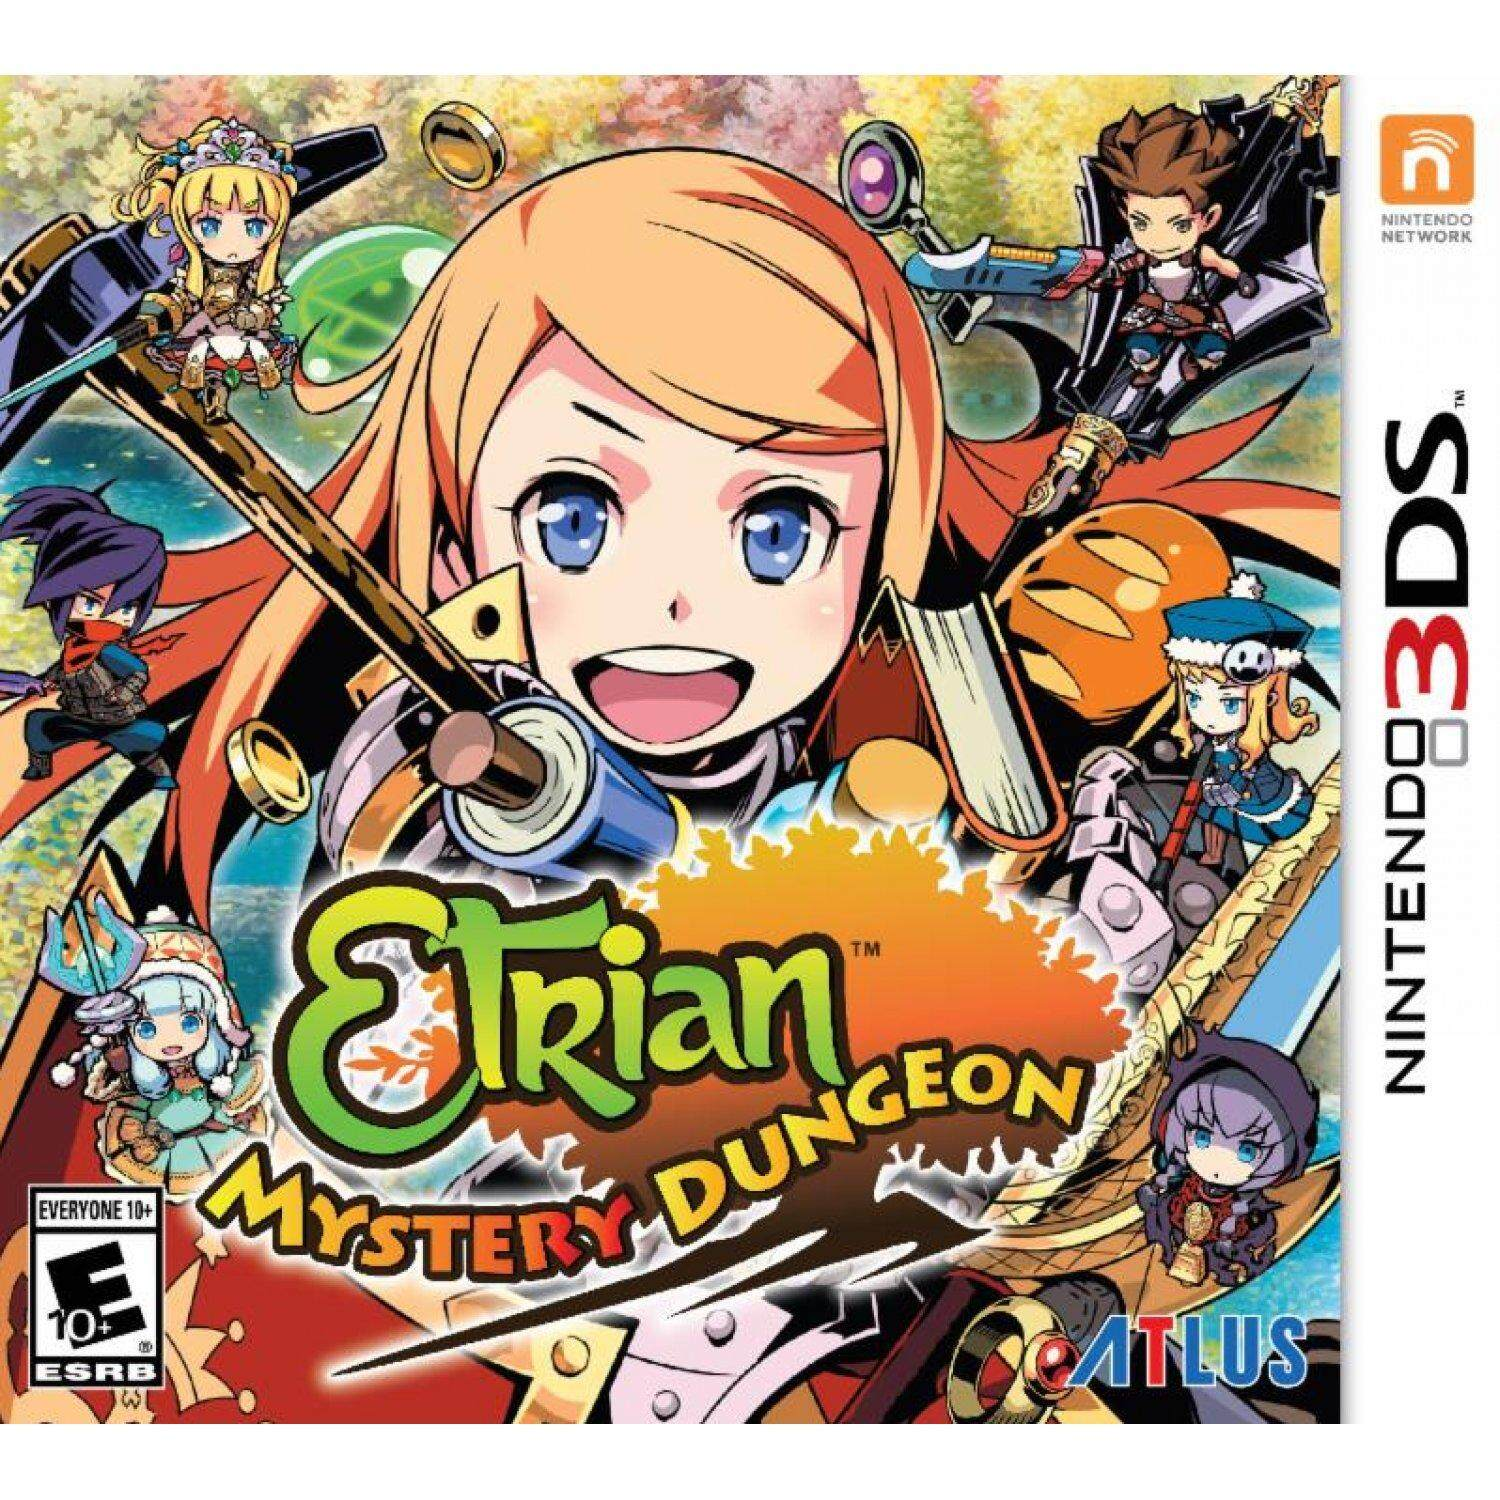 3DS Etrian Mystery Dungeon (English)